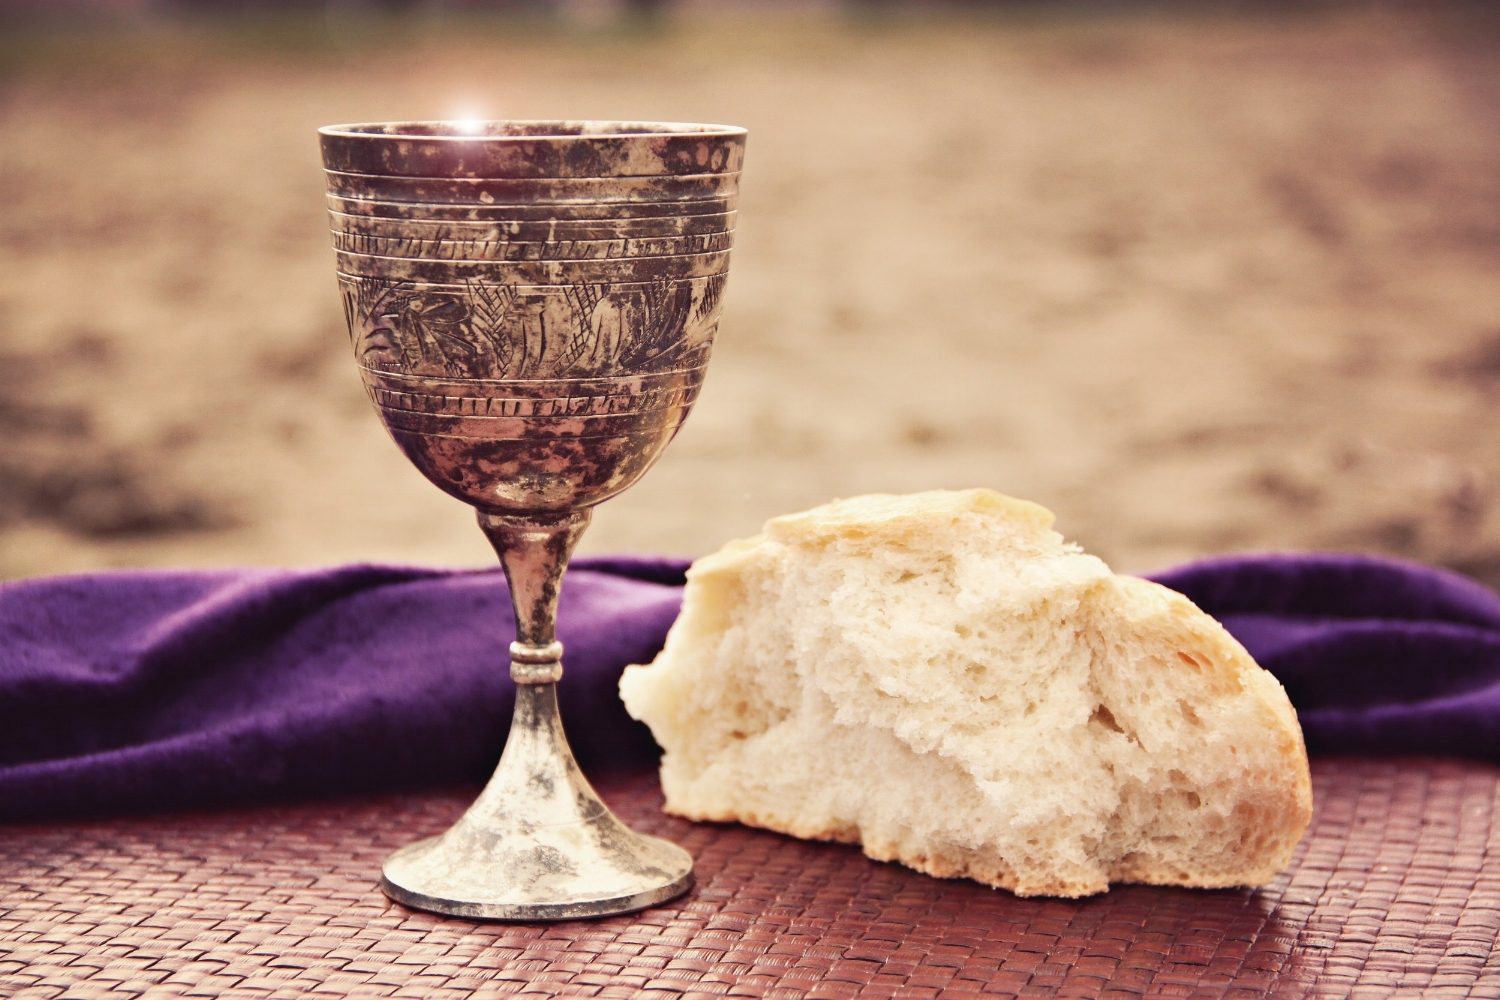 At the last meal that Jesus shared with his disciples, he told them to remember his life of sacrifice when they shared bread and wine. The Union Church of Seaside Park celebrates an open communion. Our interdenominational heritage allows us to share the bread and cup with all who follow Jesus as Lord. We celebrate the Lord's Supper 2 Sunday's every month. -